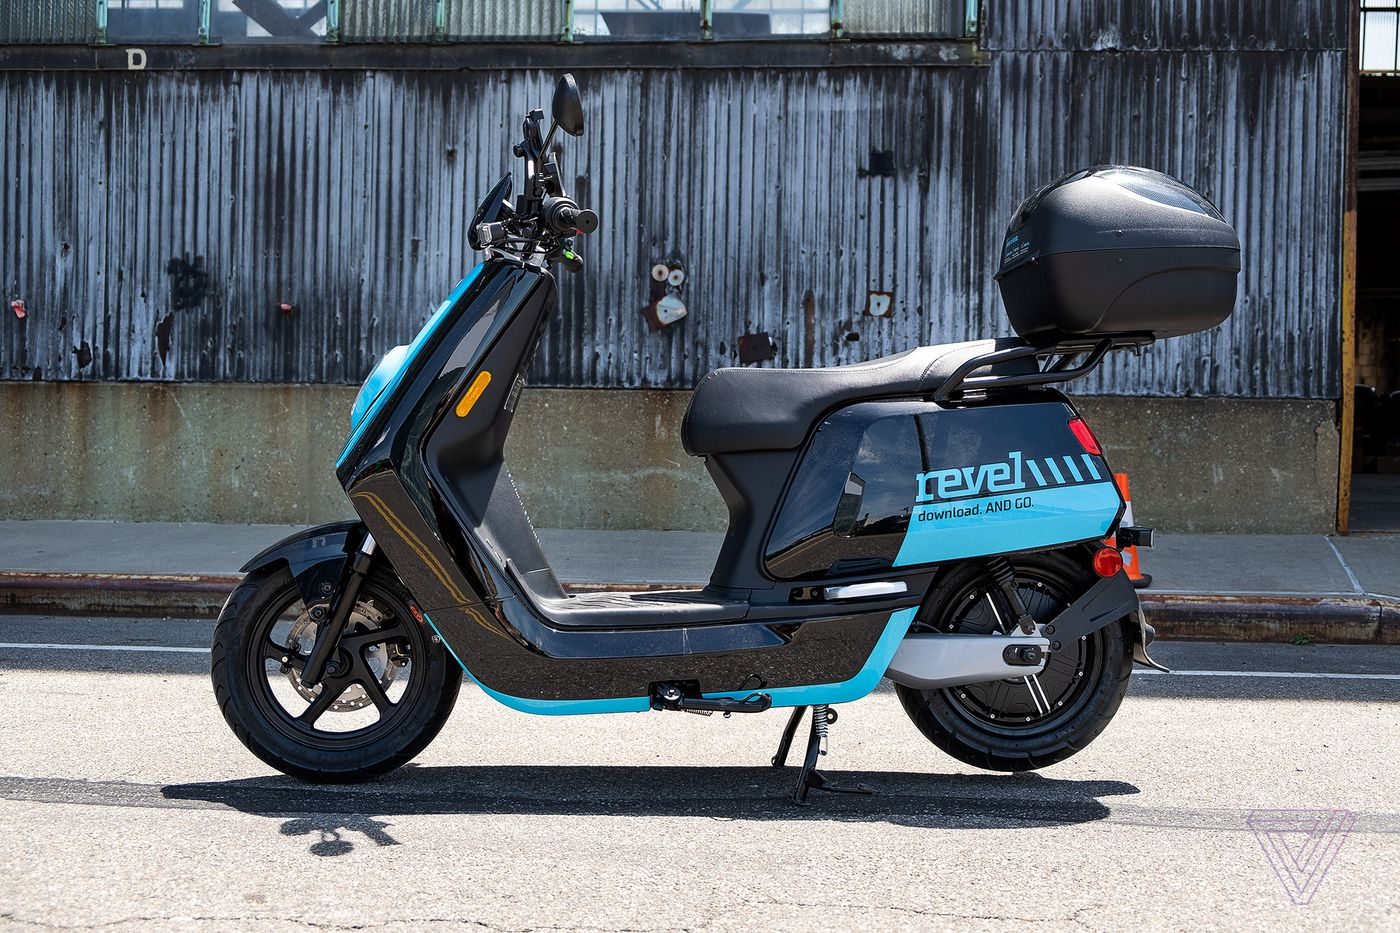 Revel's mopeds are a fun ride around Brooklyn and Queens - The Verge